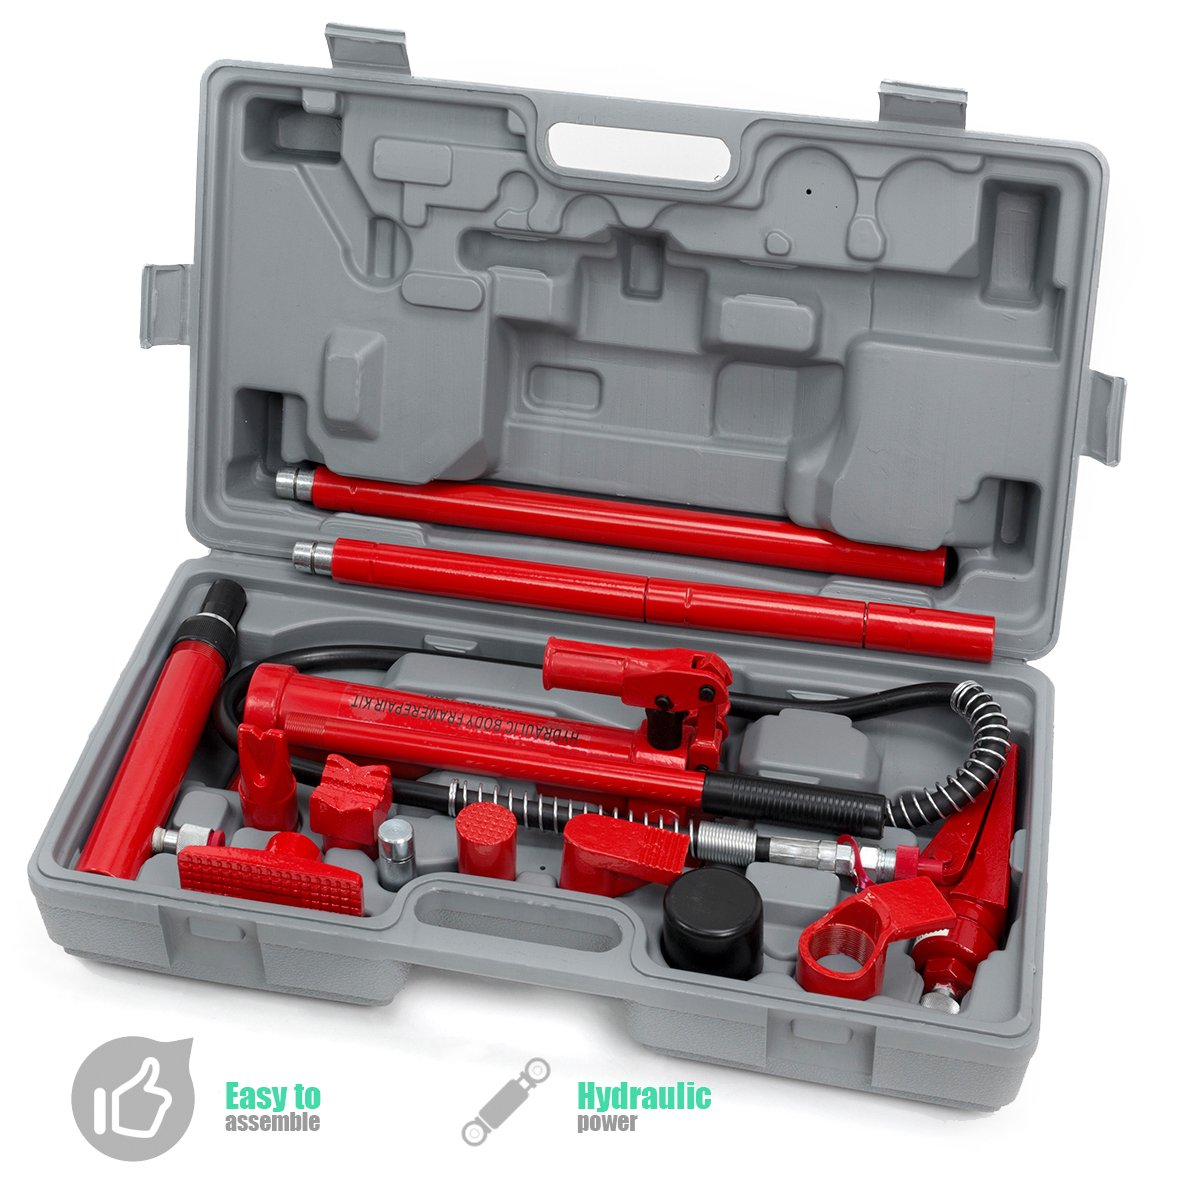 XtremepowerUS Hydraulic Porta Power Auto Body Frame Repair Kit (10 Ton or 4 Ton) by XtremepowerUS (Image #1)